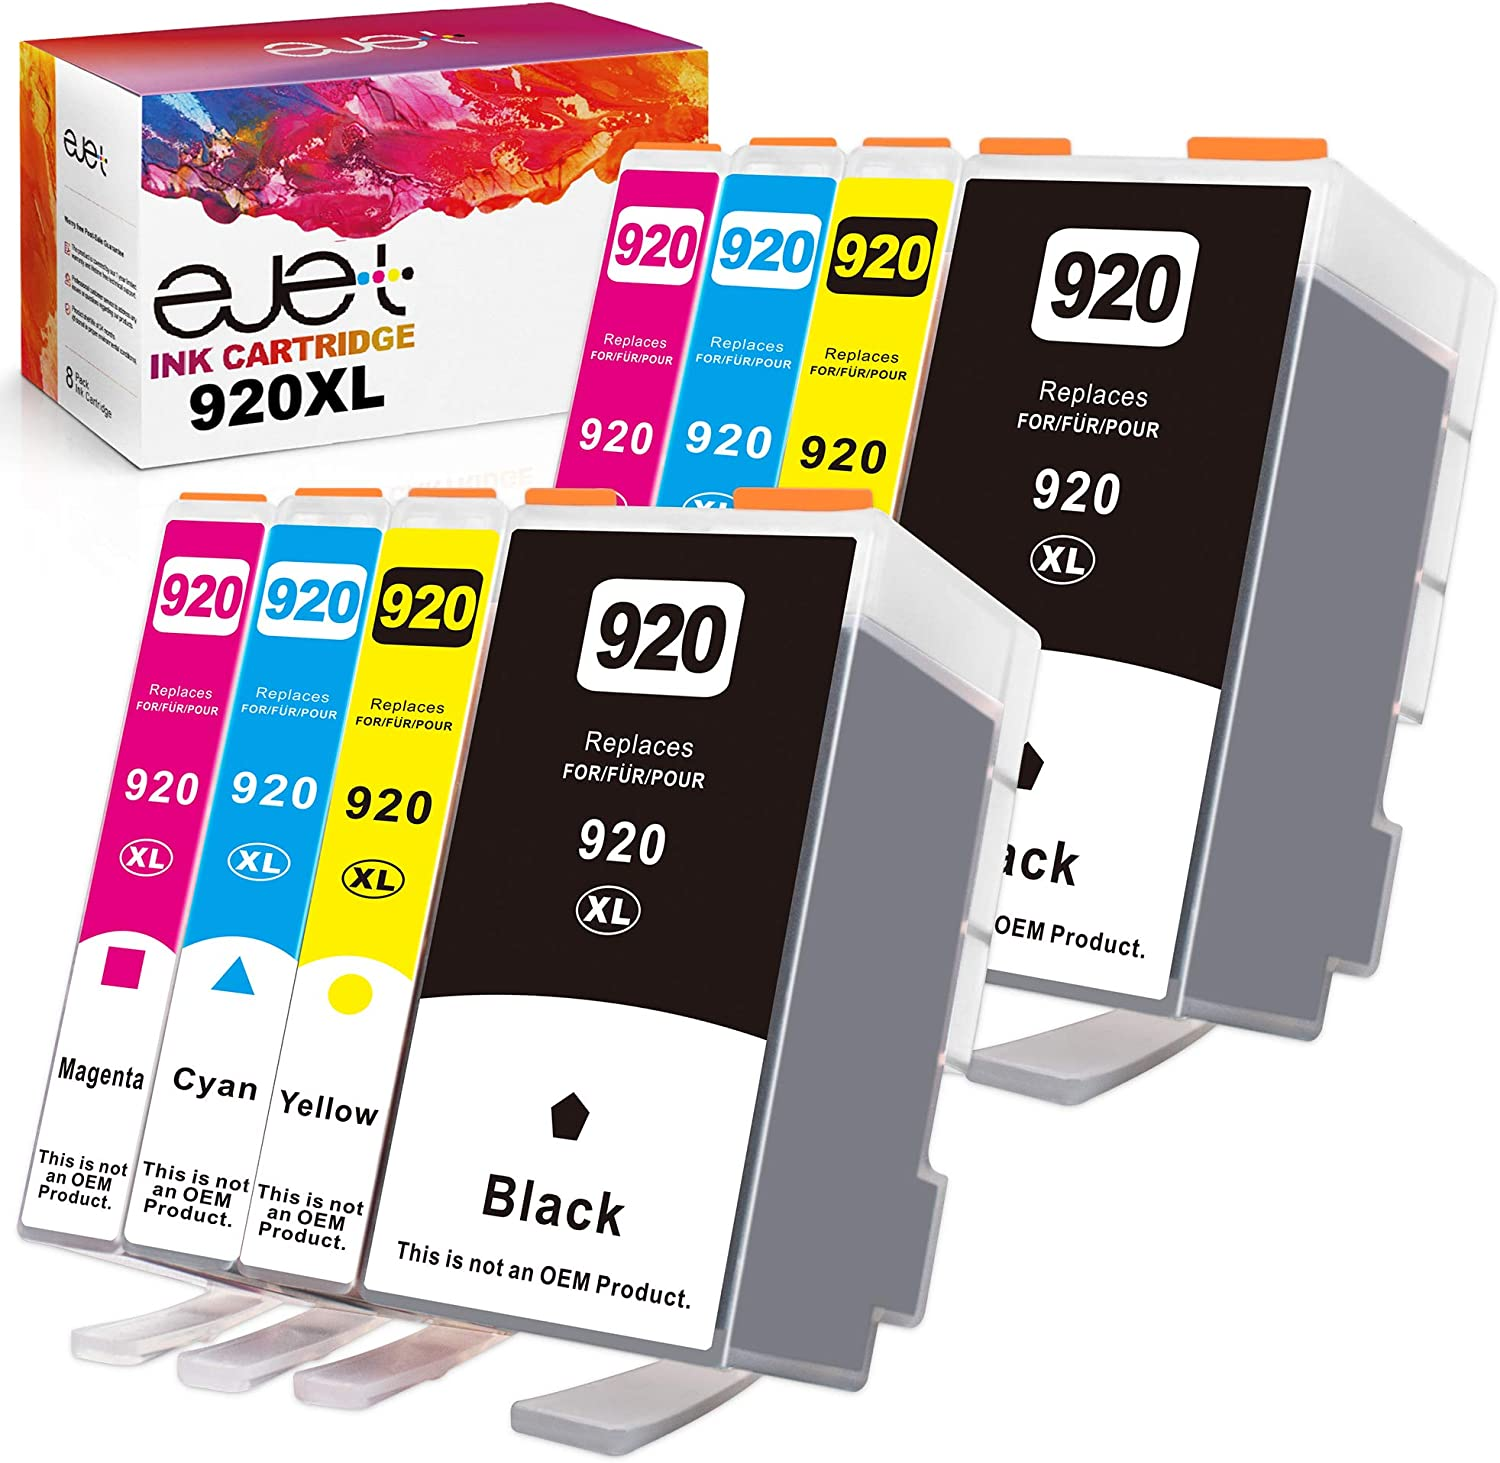 ejet Compatible Ink Cartridge Replacement for HP 920XL 920 XL to use with Officejet 6500a 6500 7500a 6000 7500 7000 Plus Printer (2 Large Black, 2 Cyan, 2 Magenta, 2 Yellow, 8-Pack)